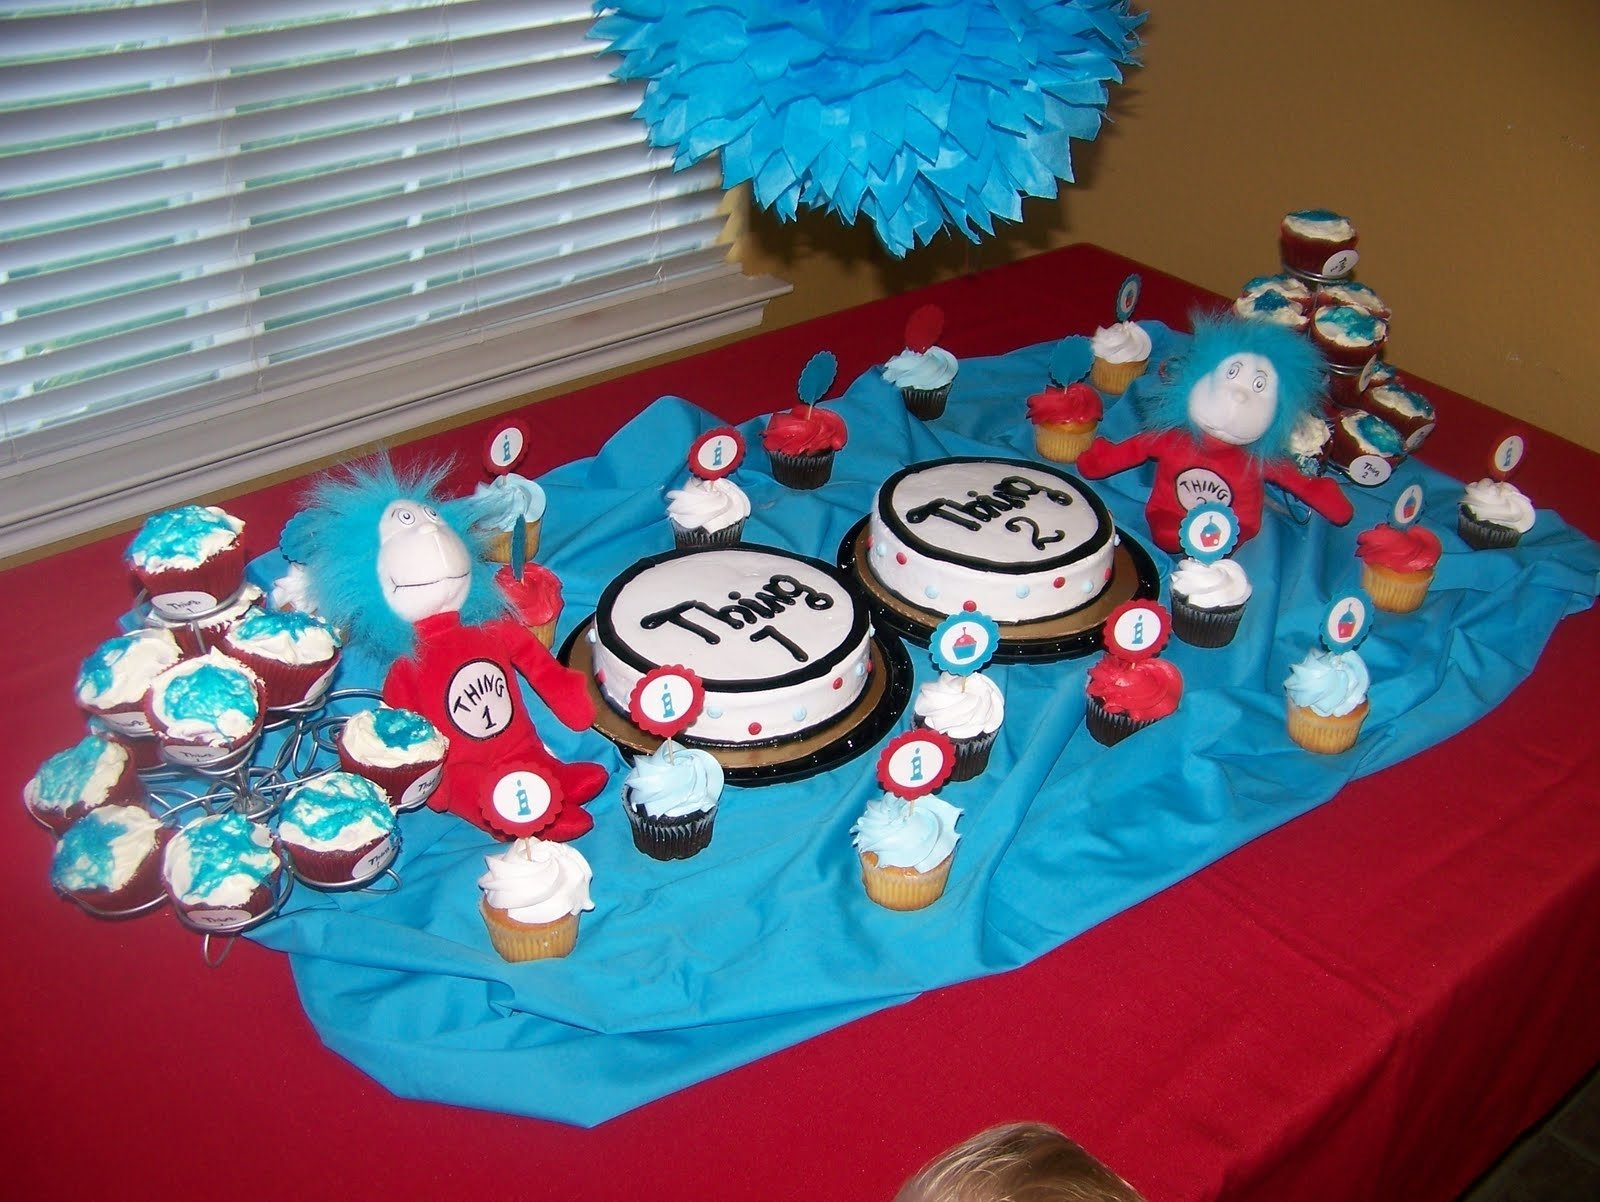 10 Trendy Thing 1 And Thing 2 Party Ideas dr seuss thing 1 thing 2 birthday party giggles galore 6 2020